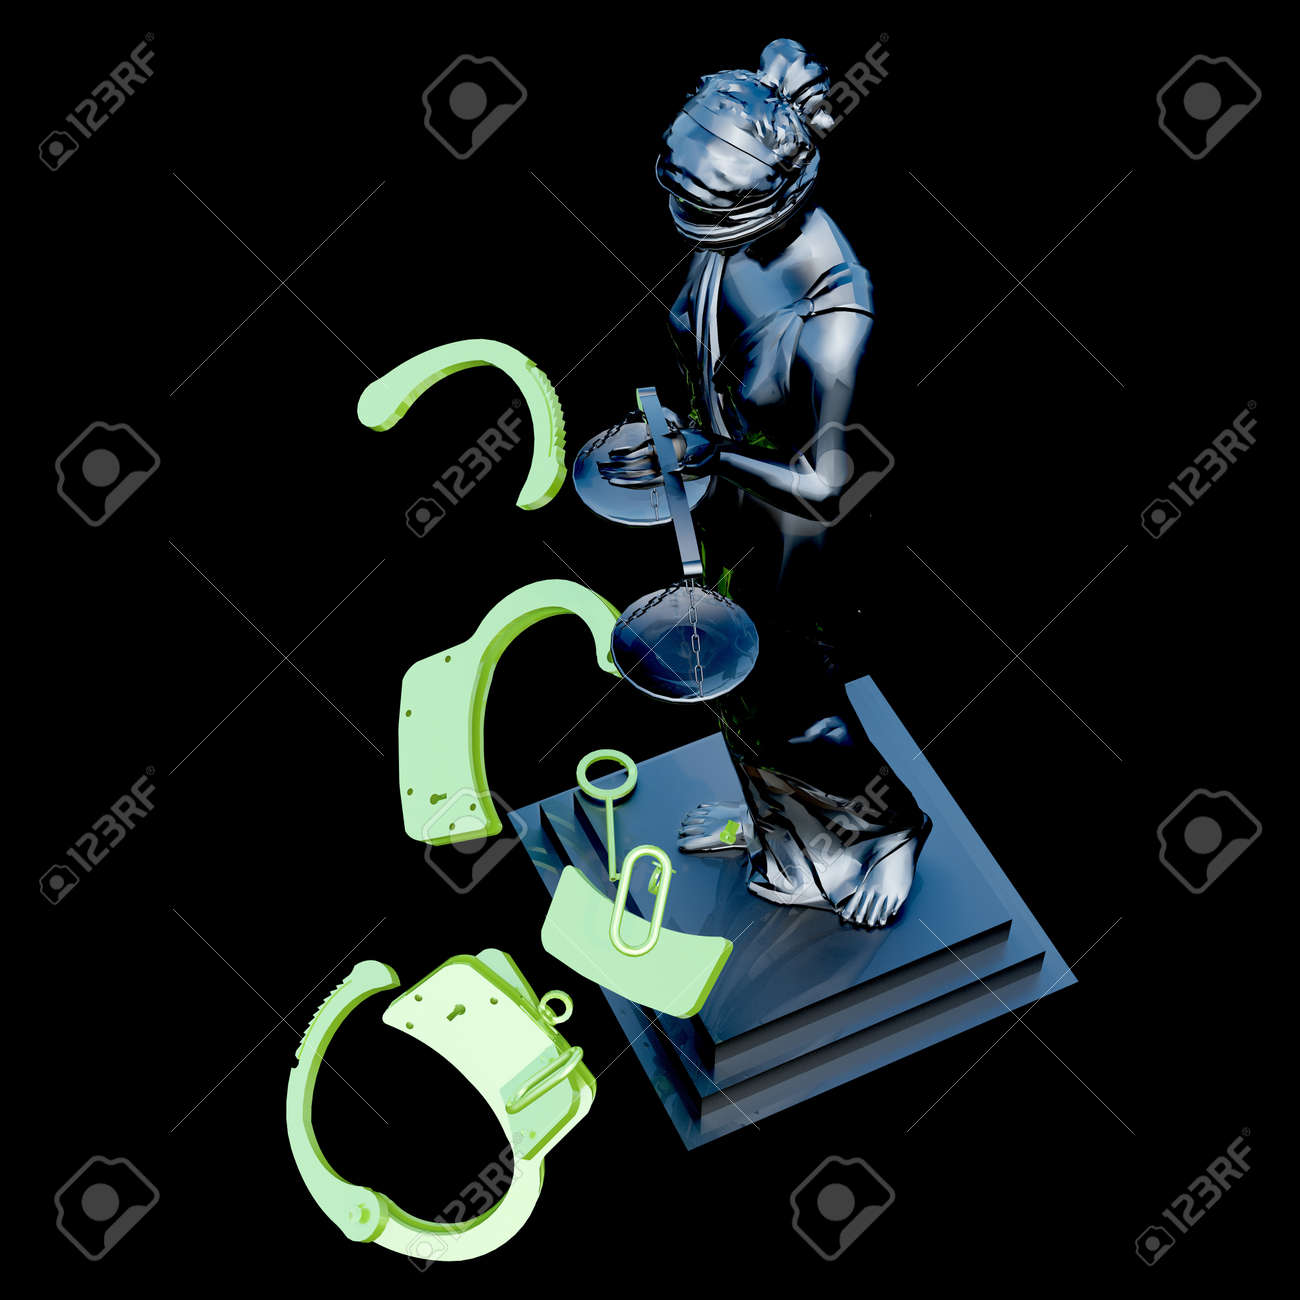 Lady of Justice  statue and handcuffs Stock Photo - 23332516